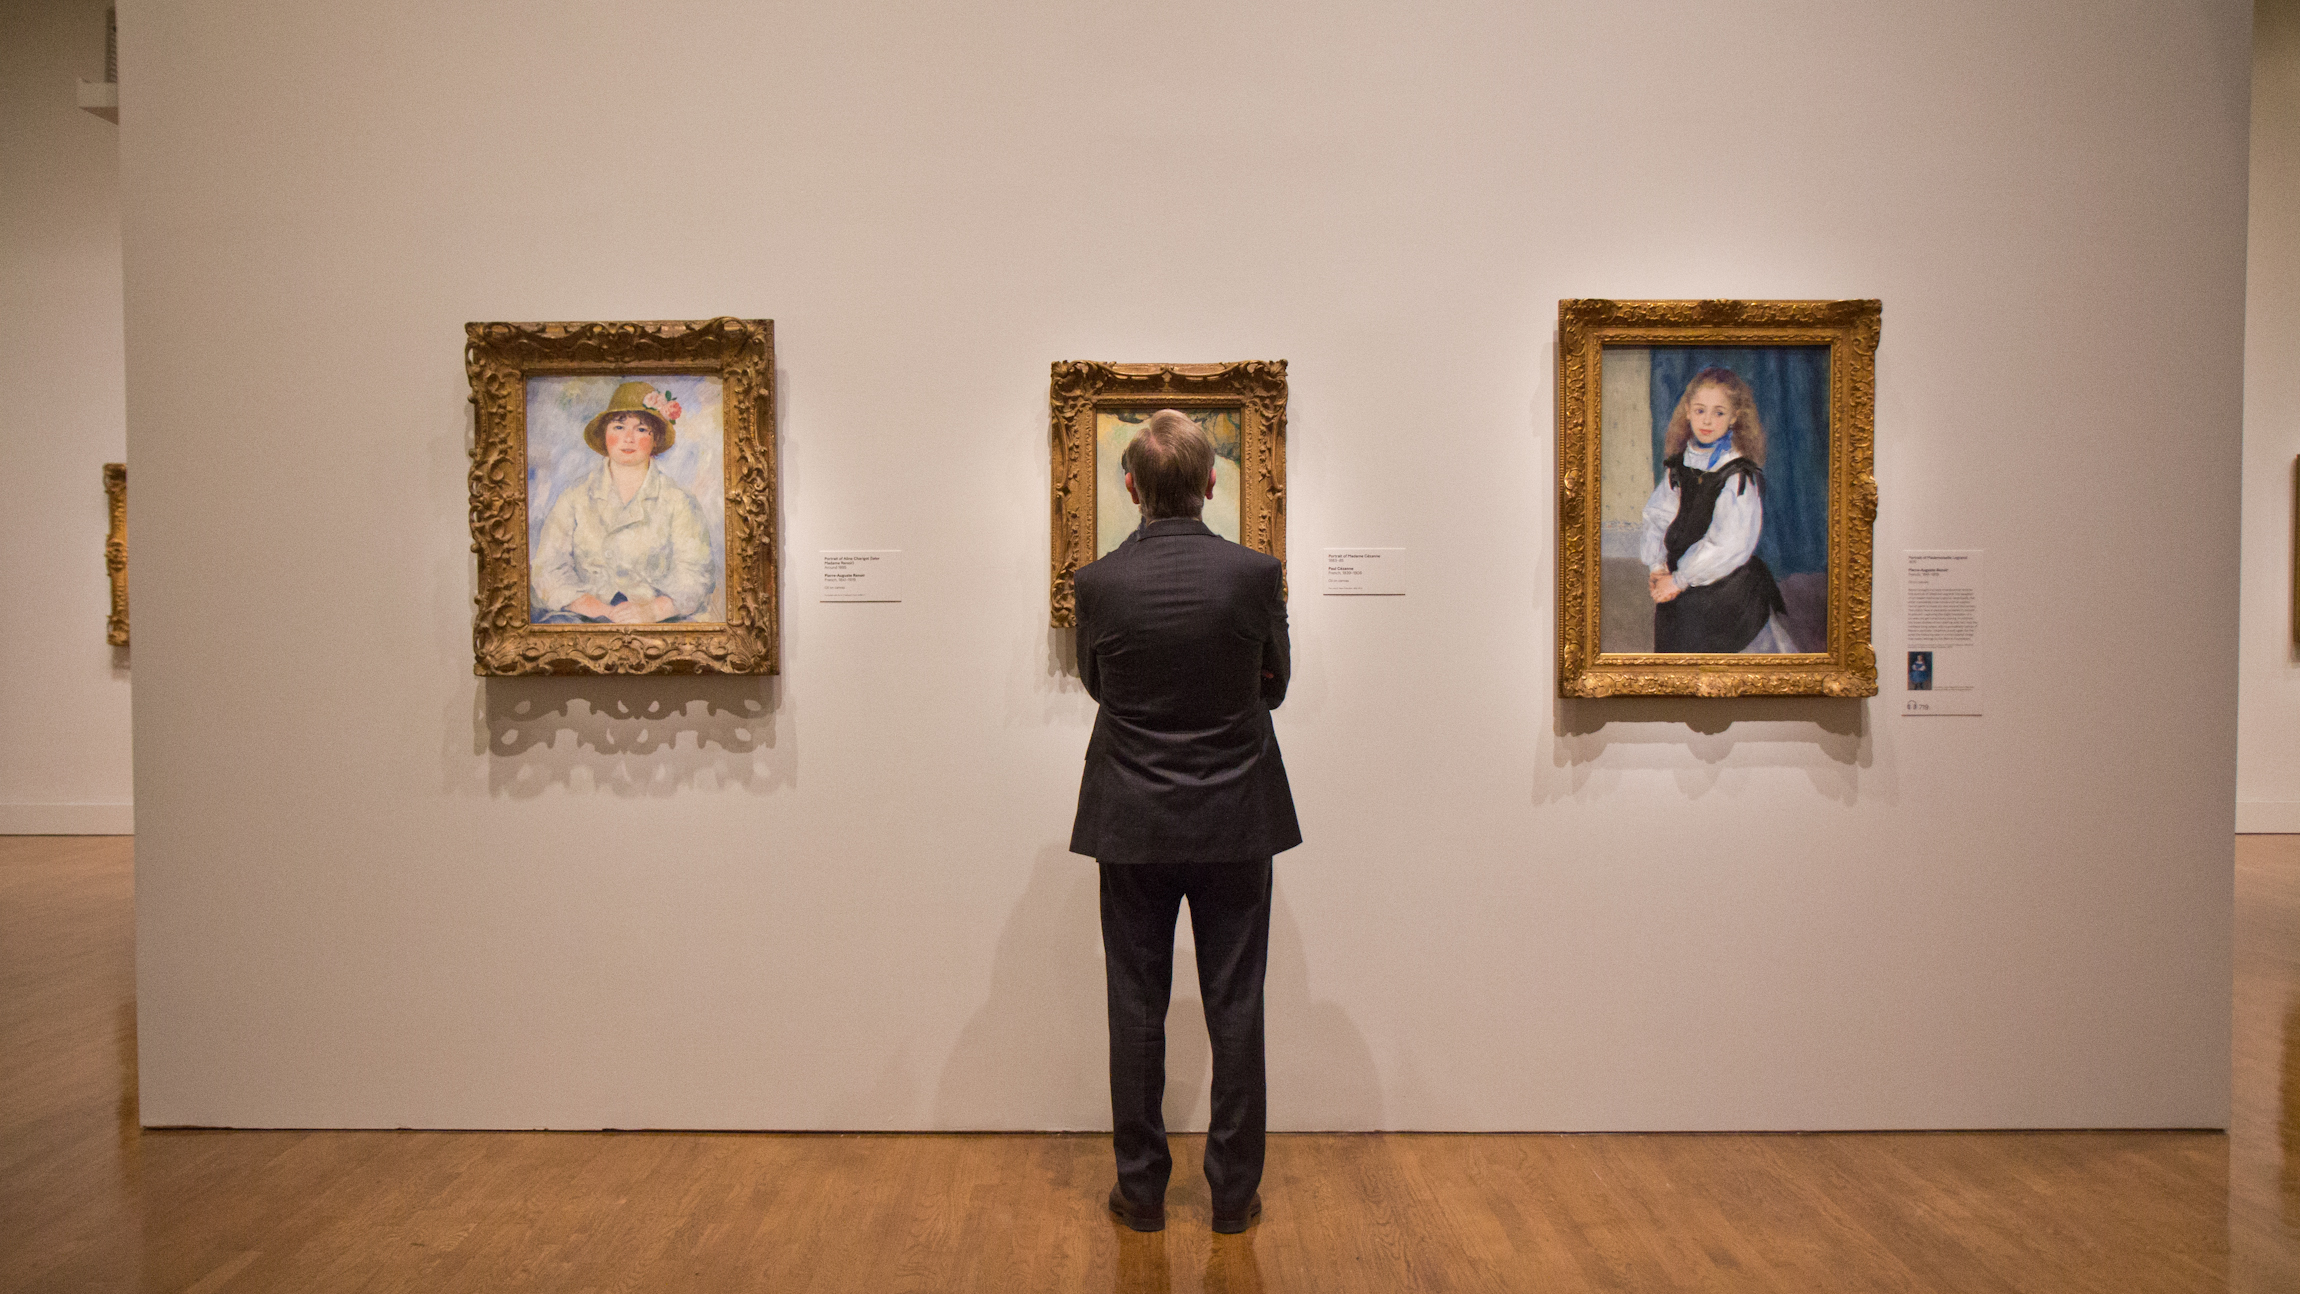 Philadelphia Museum of Art gives its Impressionists a fresh look - WHYY